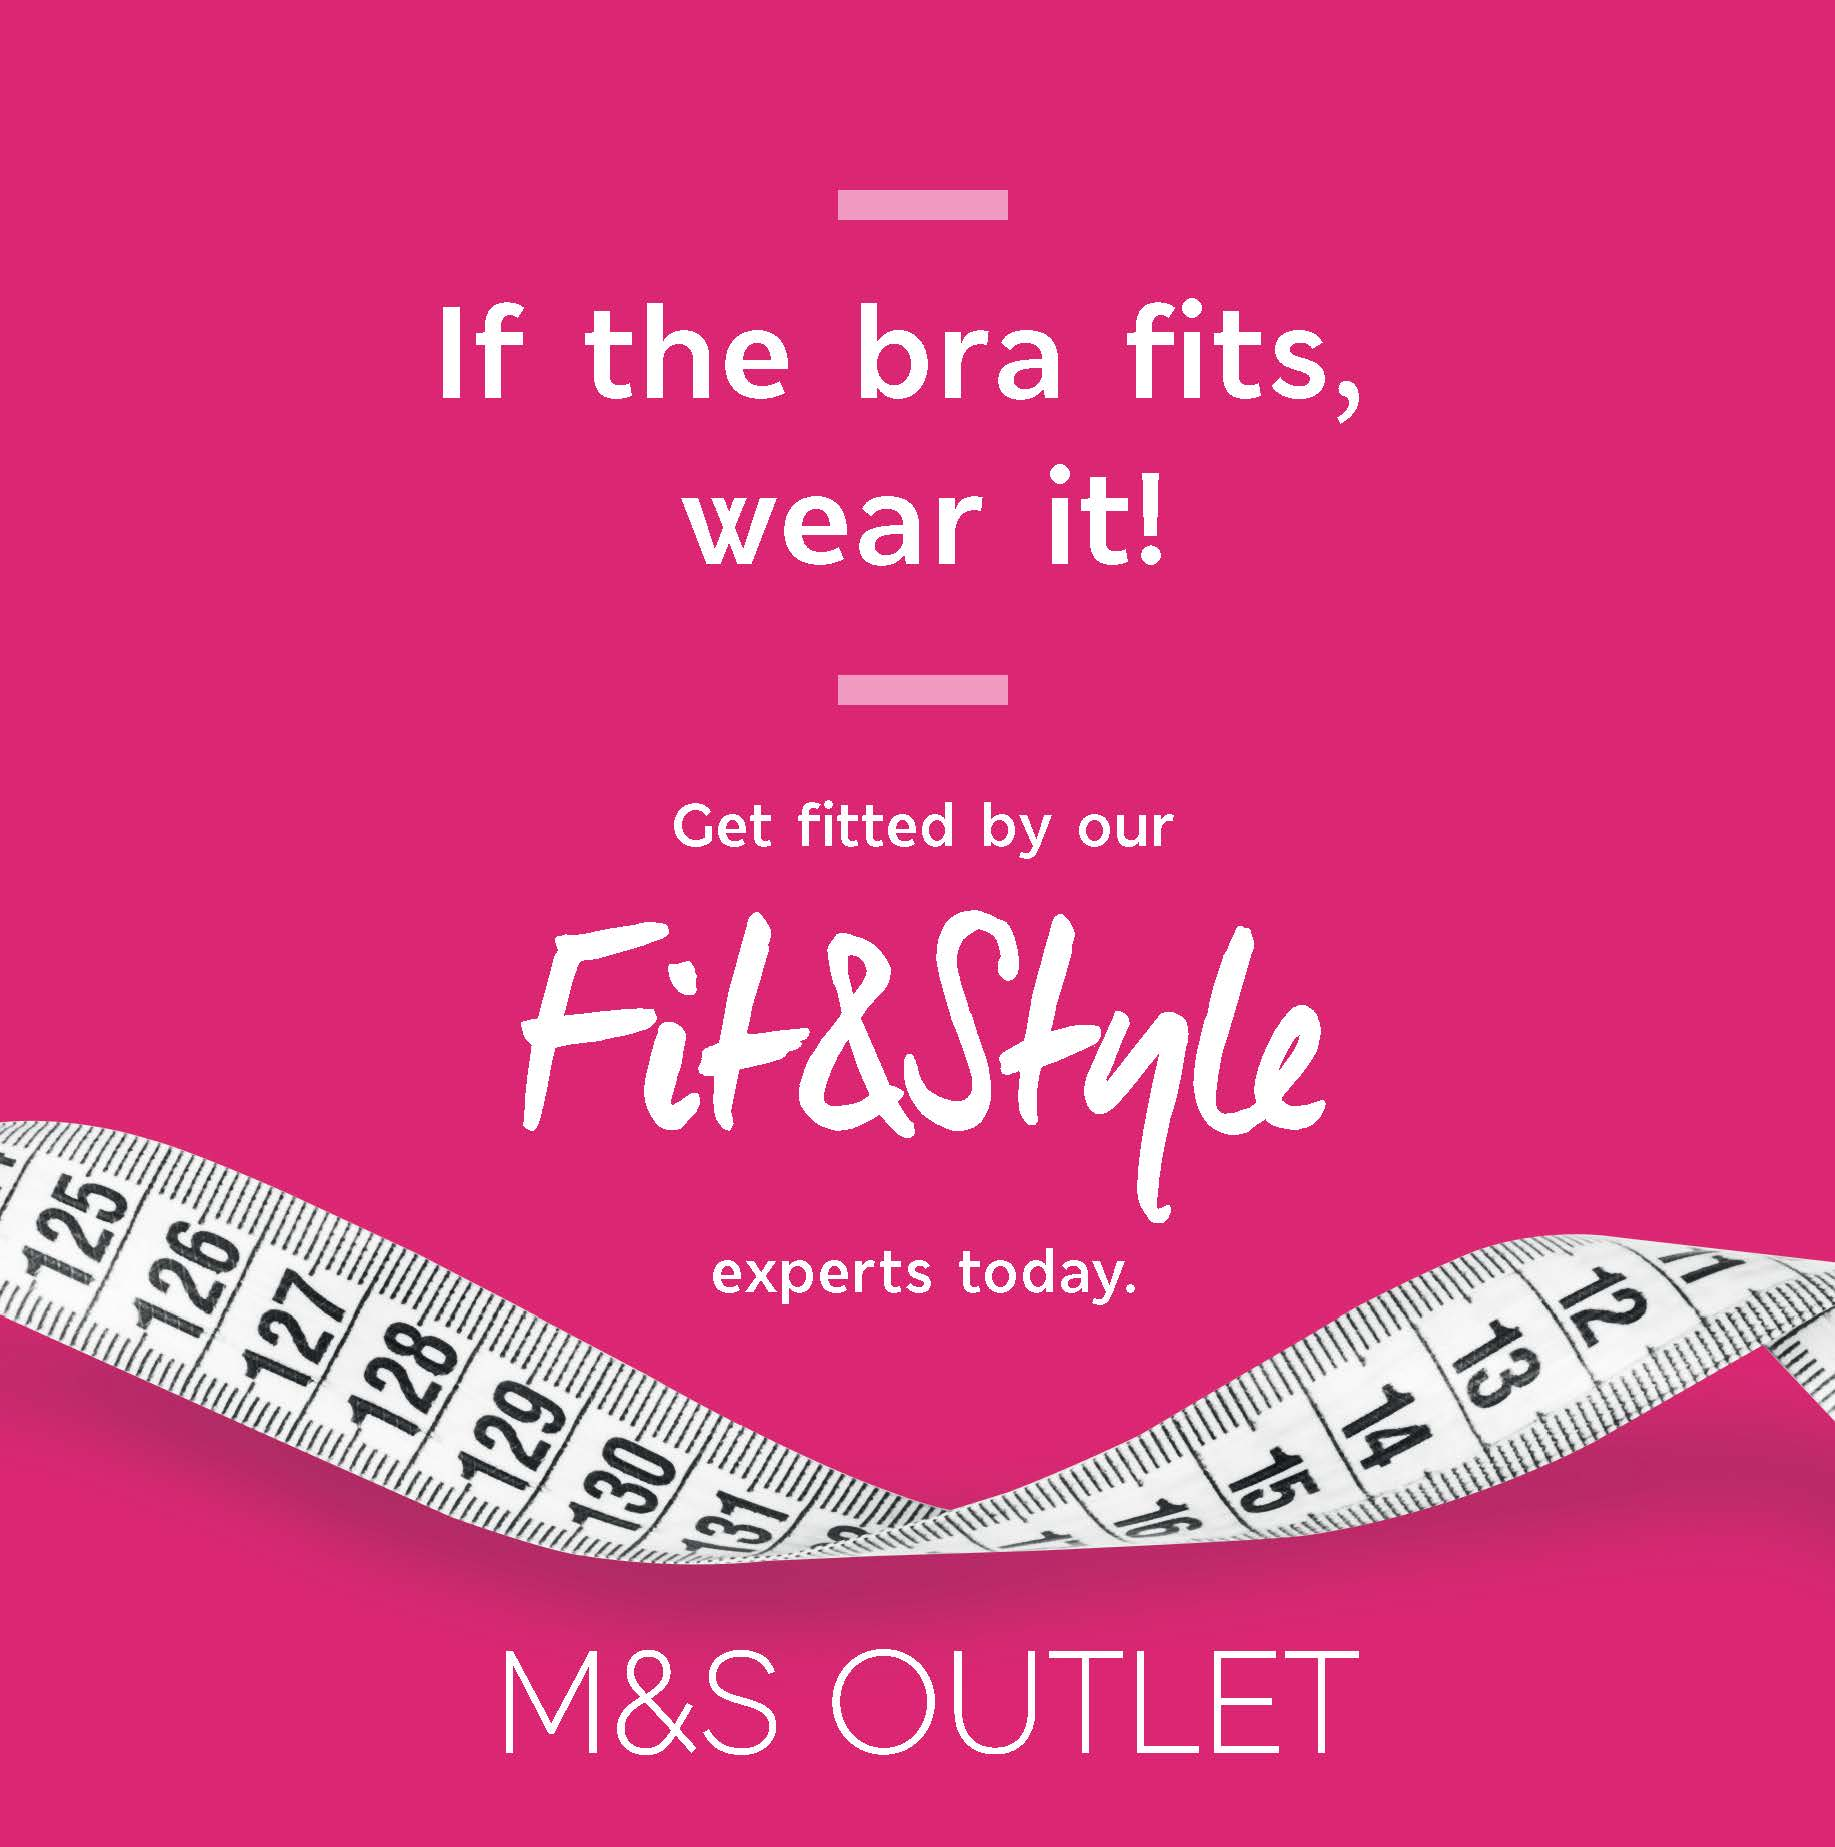 The Bra Fit Campaign with M&S Outlet